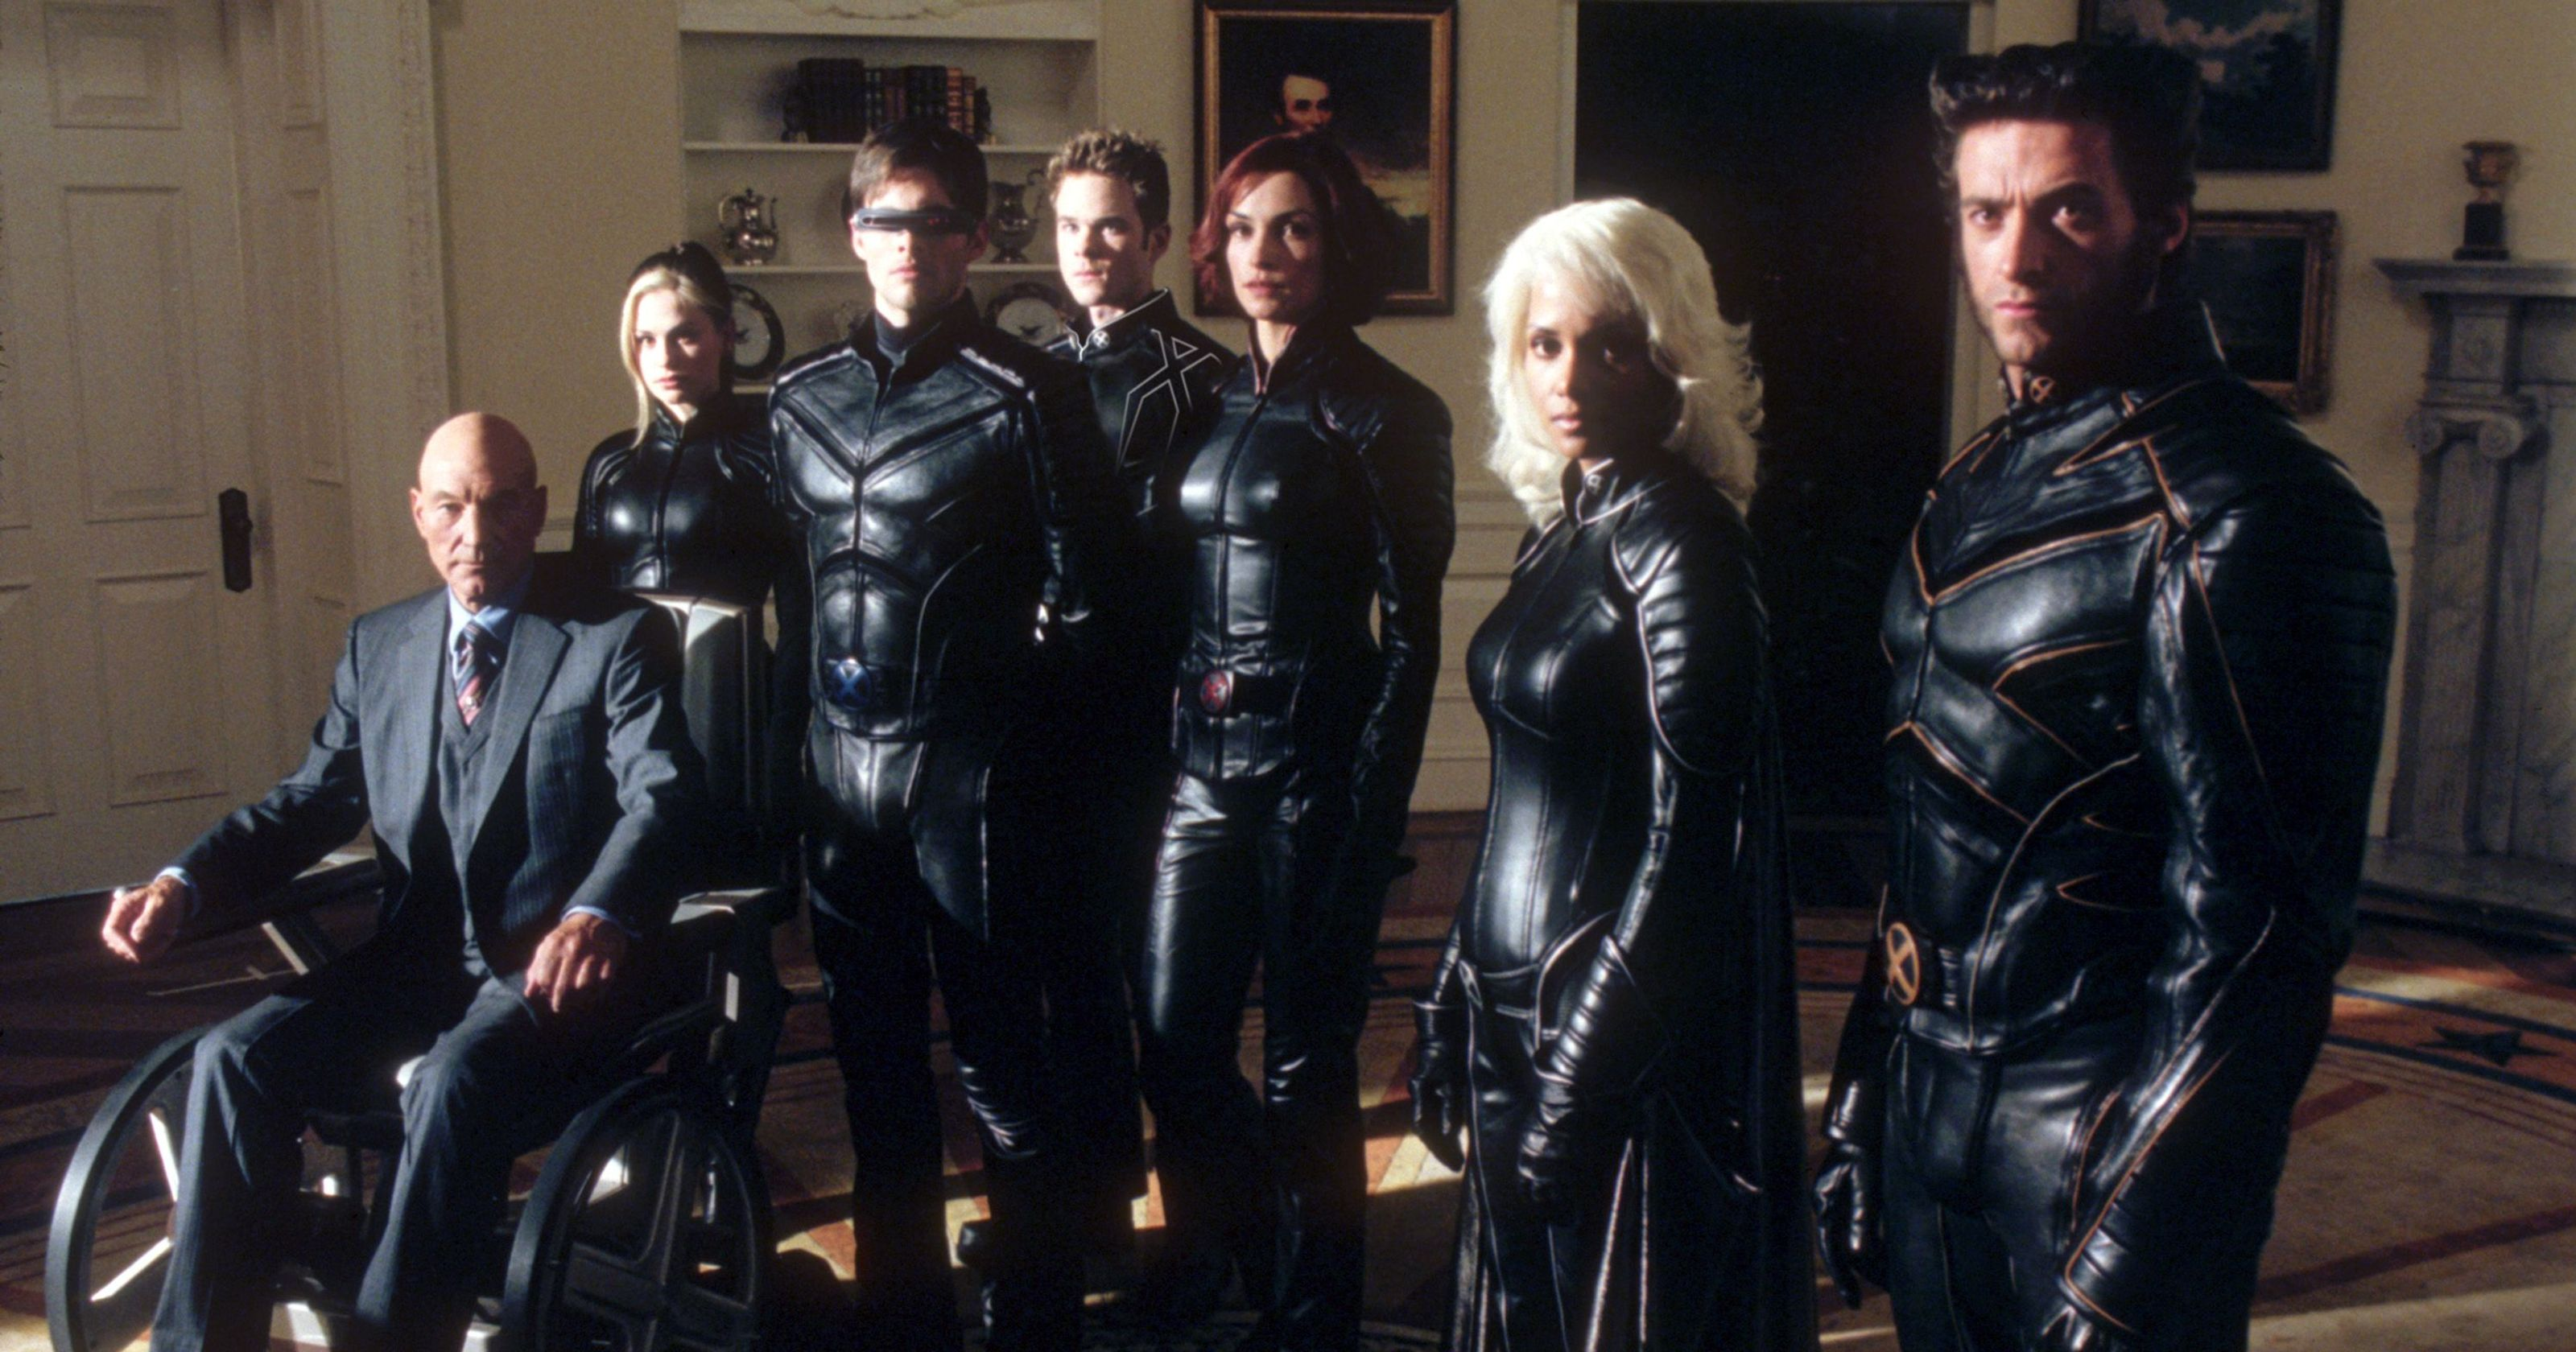 Professor Xavier (Patrick Stewart), Rogue (Anna Paquin), Cyclops (James Marsden), Bobby (Shawn Ashmore), Dr Jean Grey (Famke Janssen), Storm (Halle Berry) and Wolverine (Hugh Jackman) in X-Men (2000)